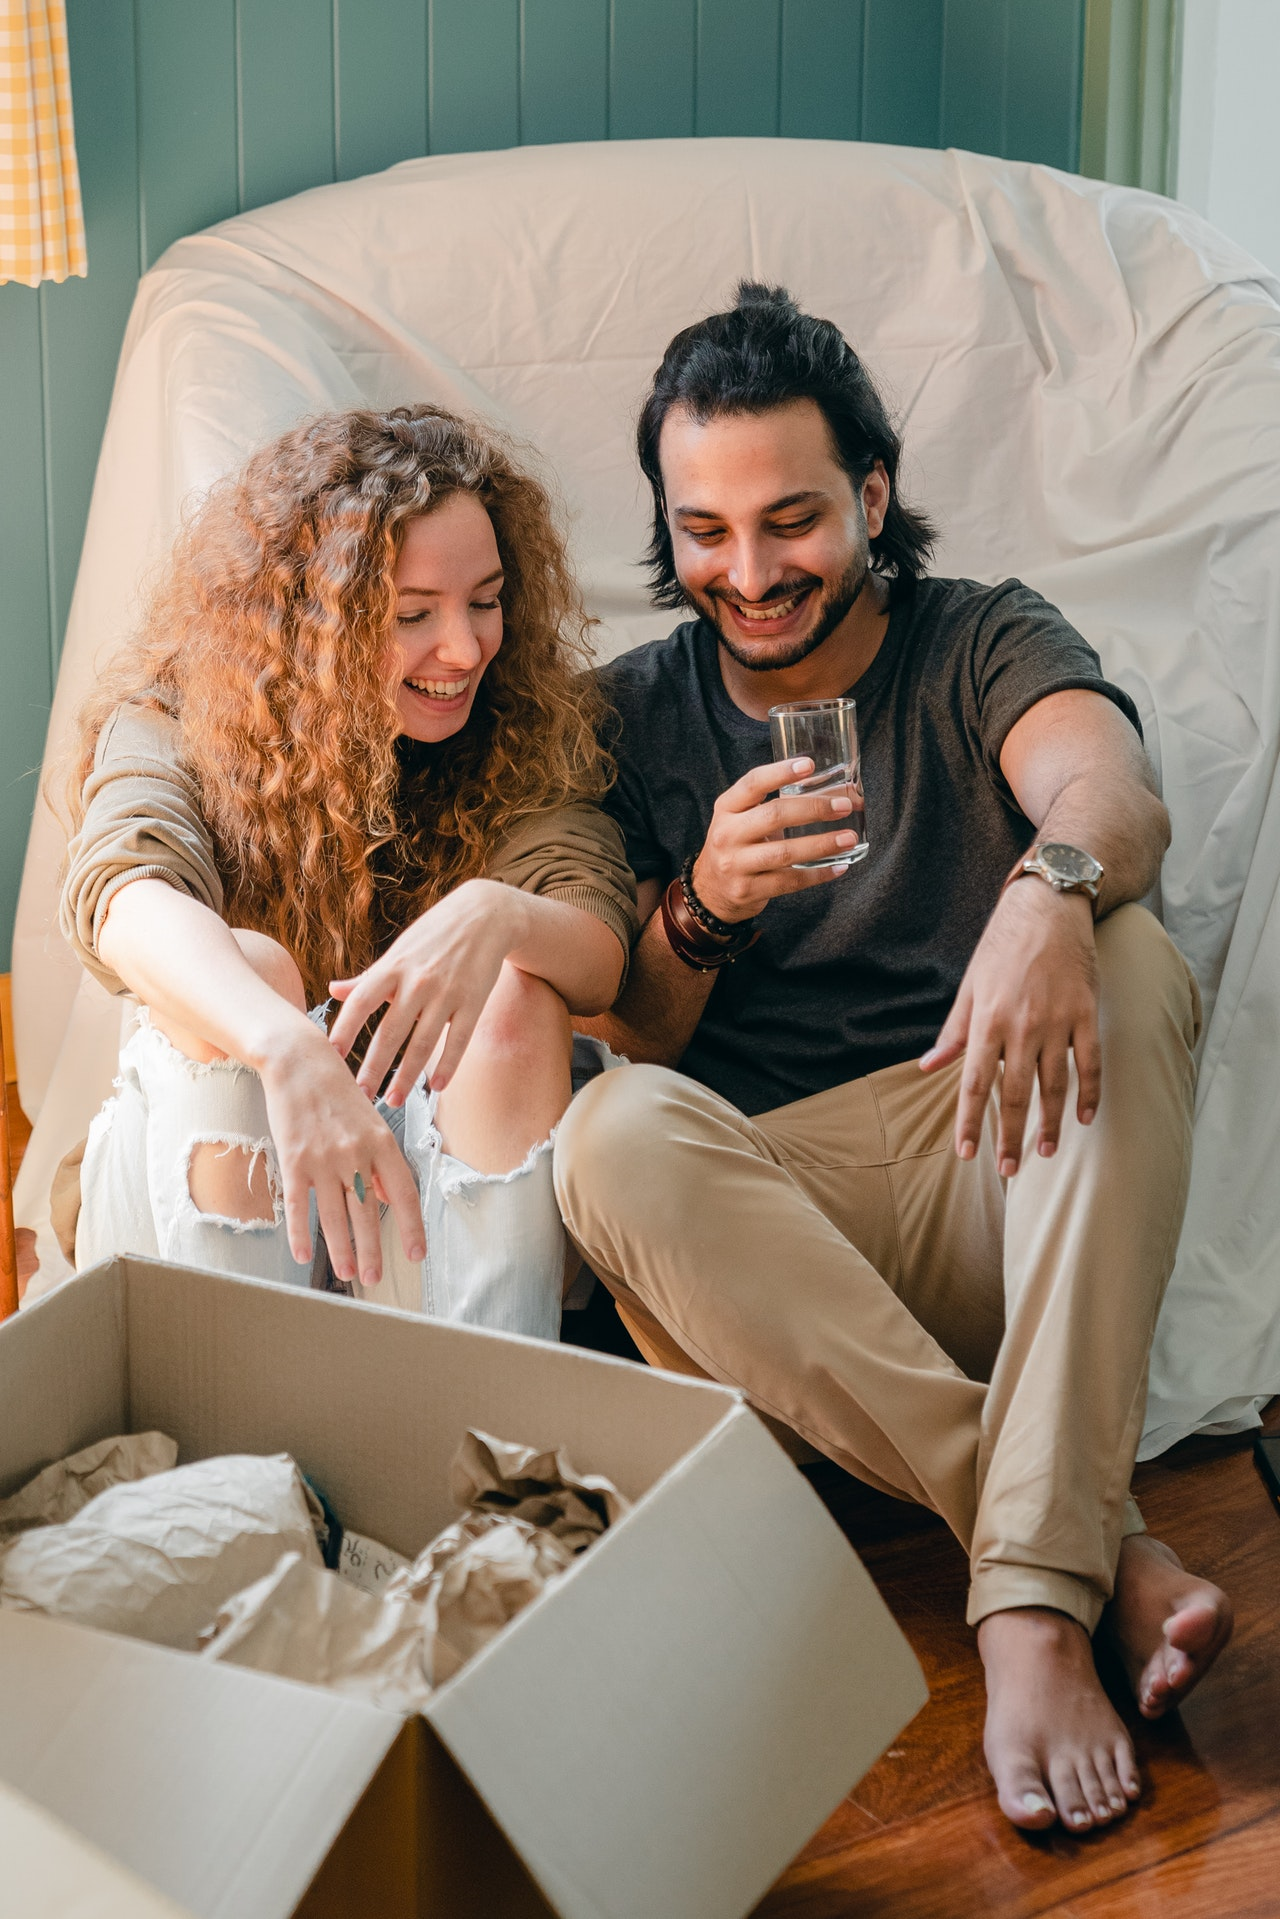 couple Drinking over packed boxes from moving